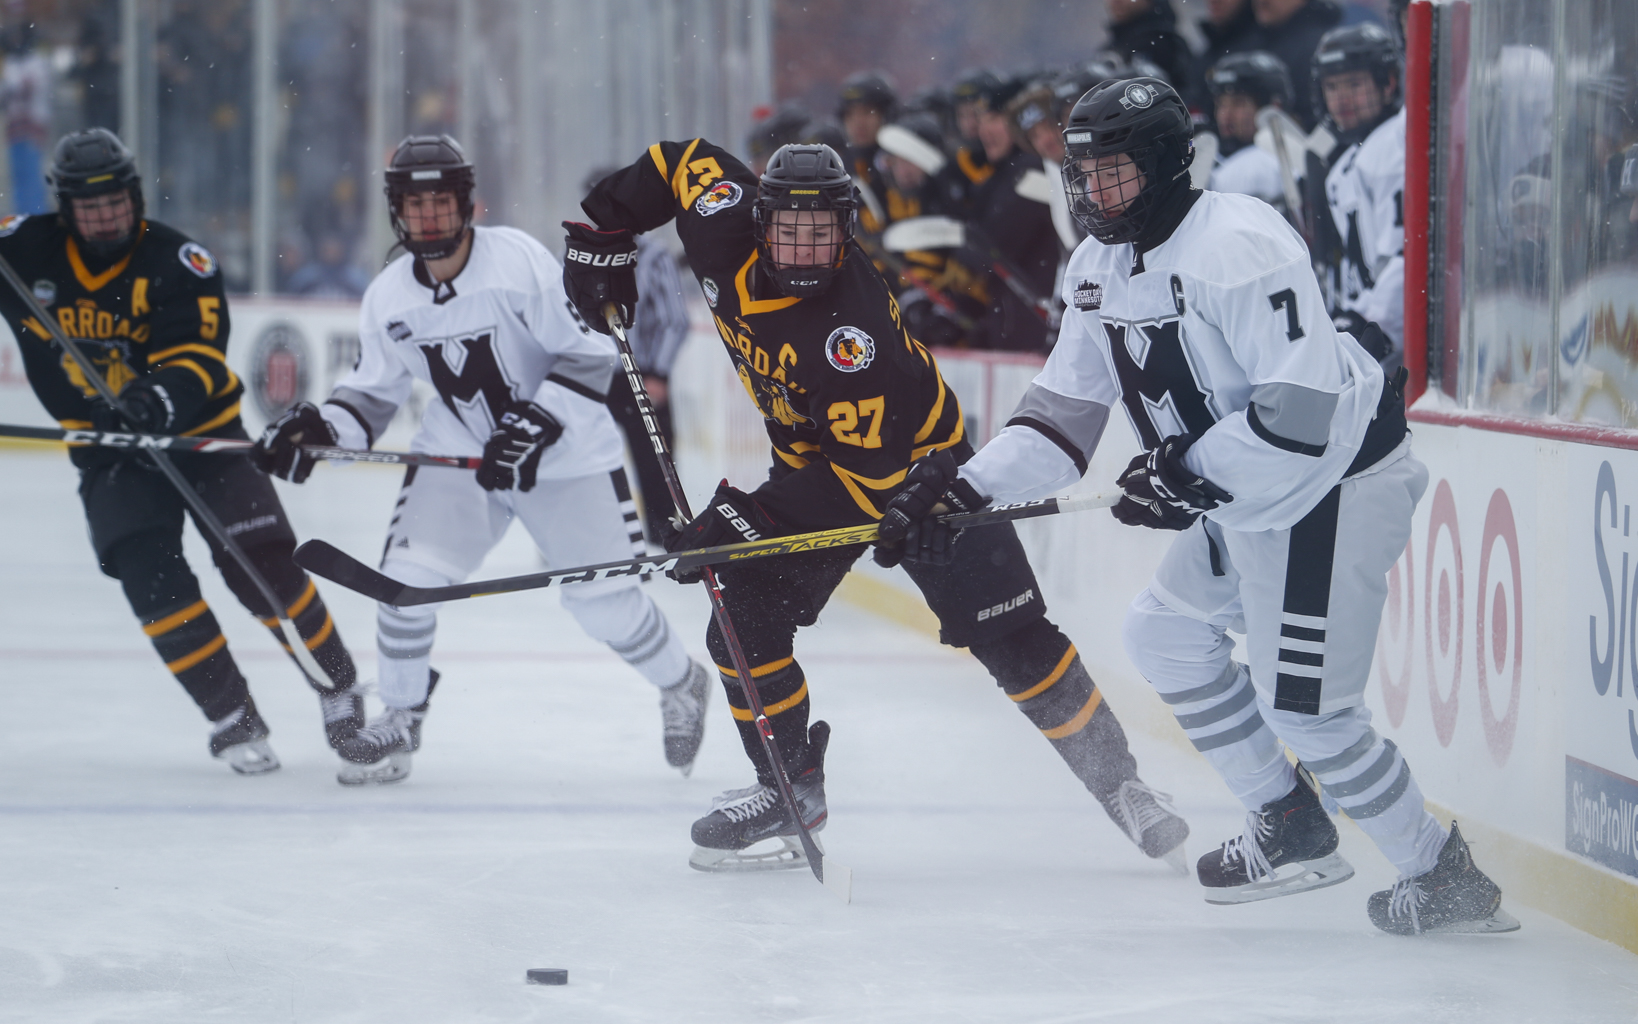 Minneapolis' Ben Murray (7) chips the puck into the corner against Warroad Saturday morning at Parade Stadium. Murray scored Minneapolis' goal in its 5-1 loss to the Warriors. Photo by Jeff Lawler, SportsEngine